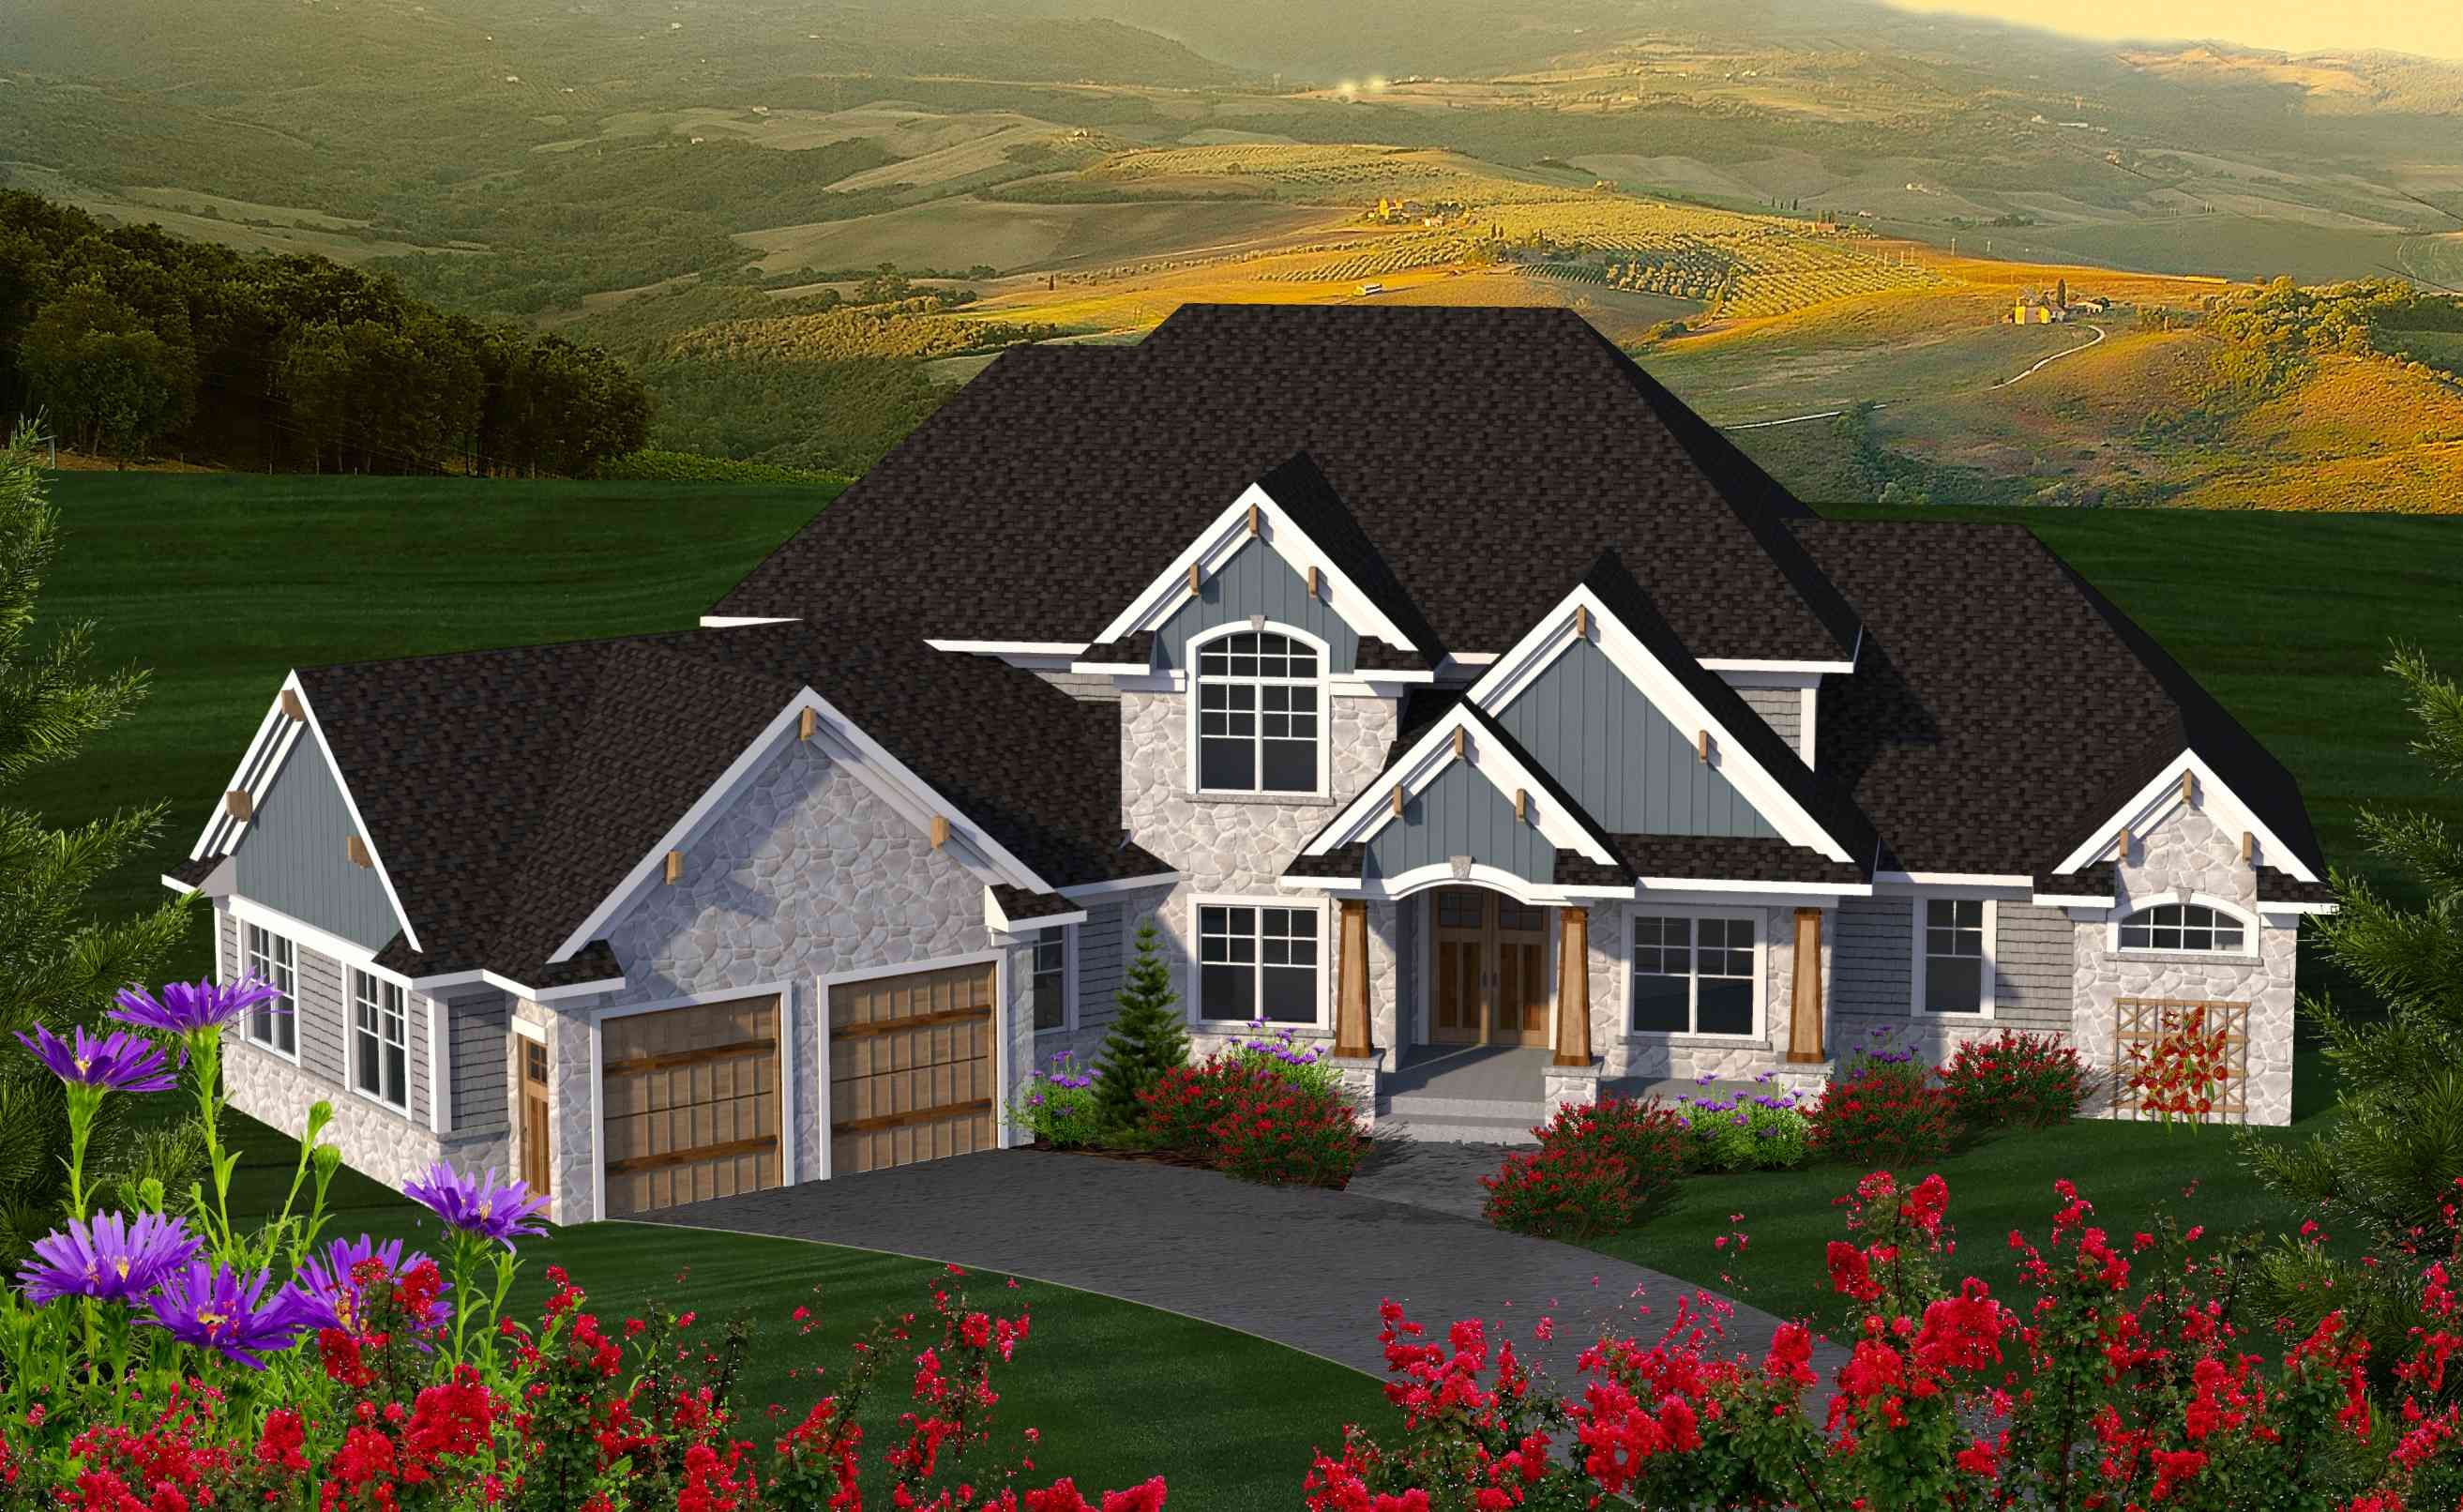 4 Bed House Plan with Angled Garage